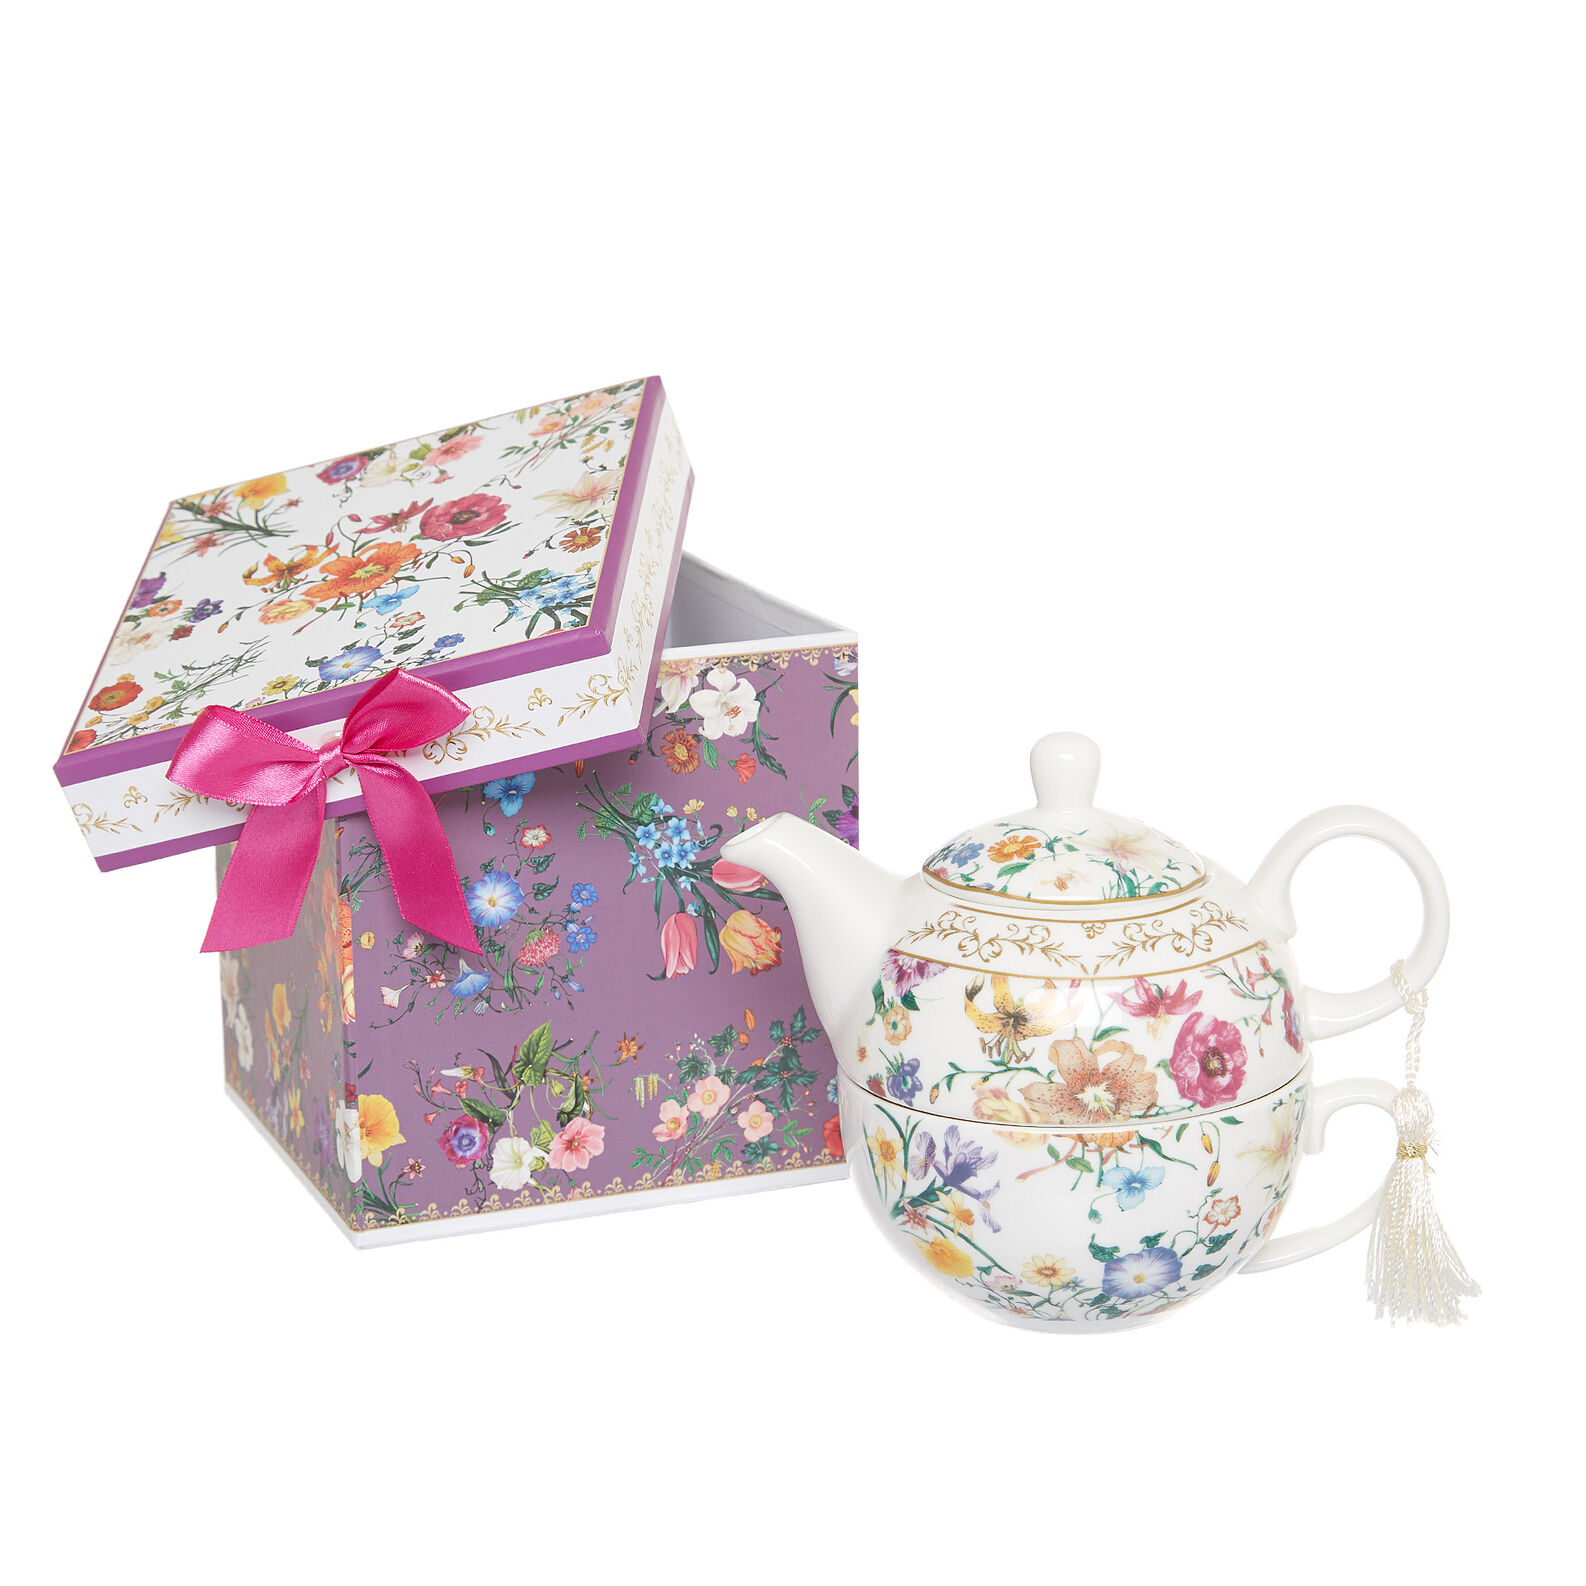 Tea for one regalo decoro fiori